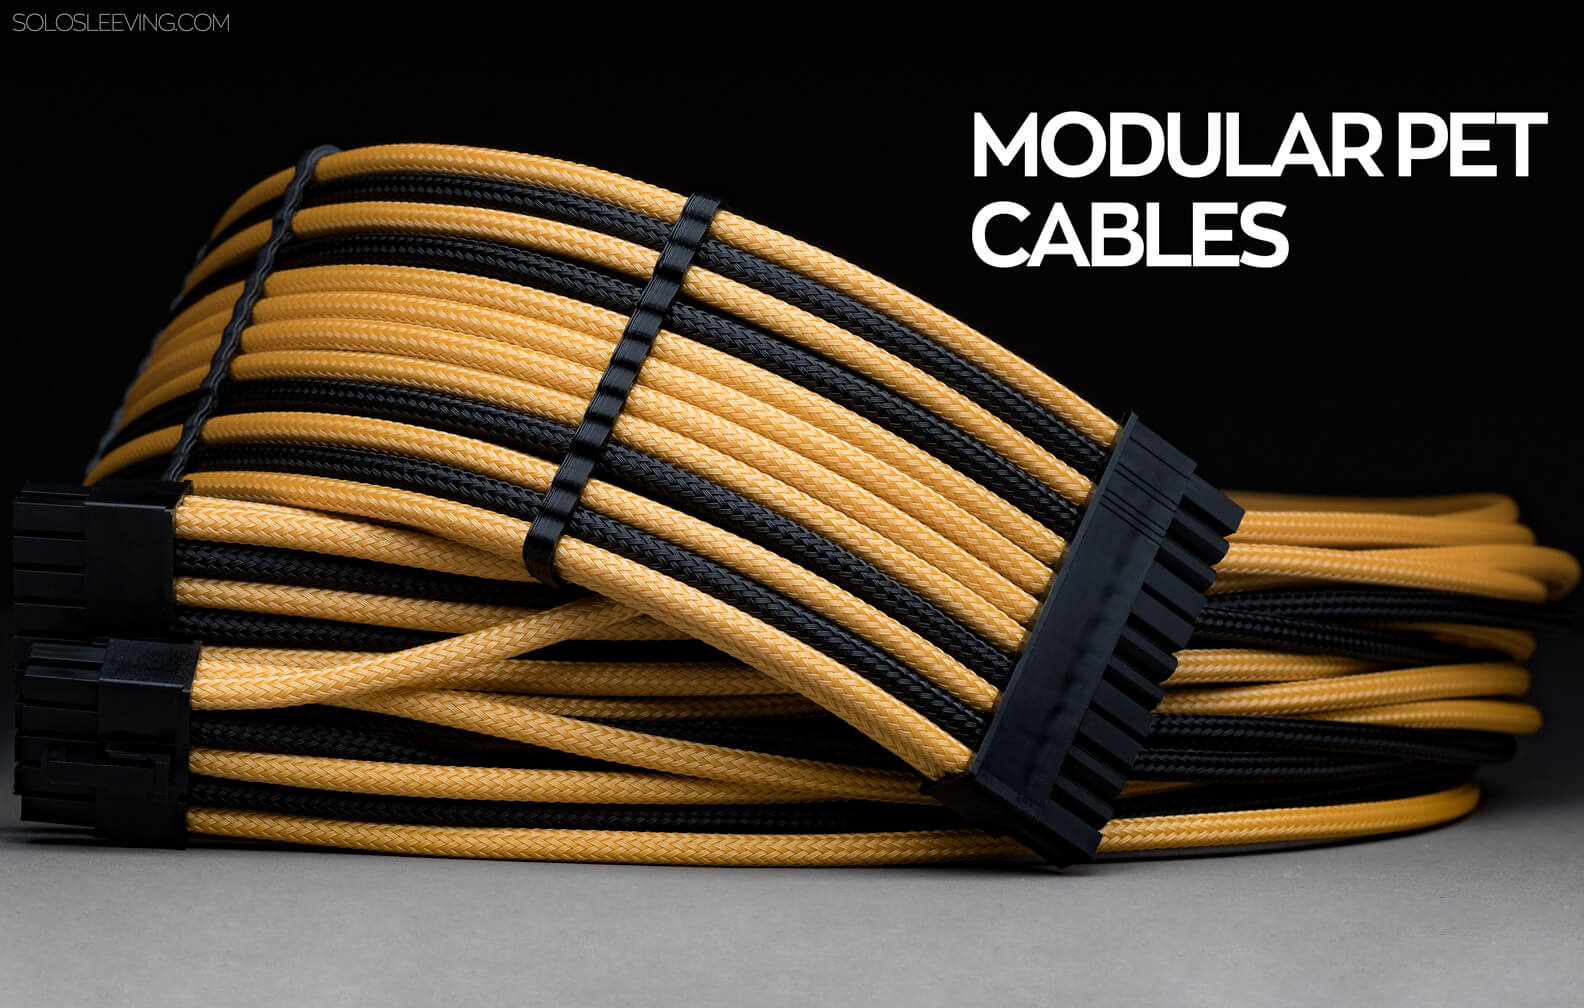 PET sleeved modular PSU cables handcrafted in the USA.